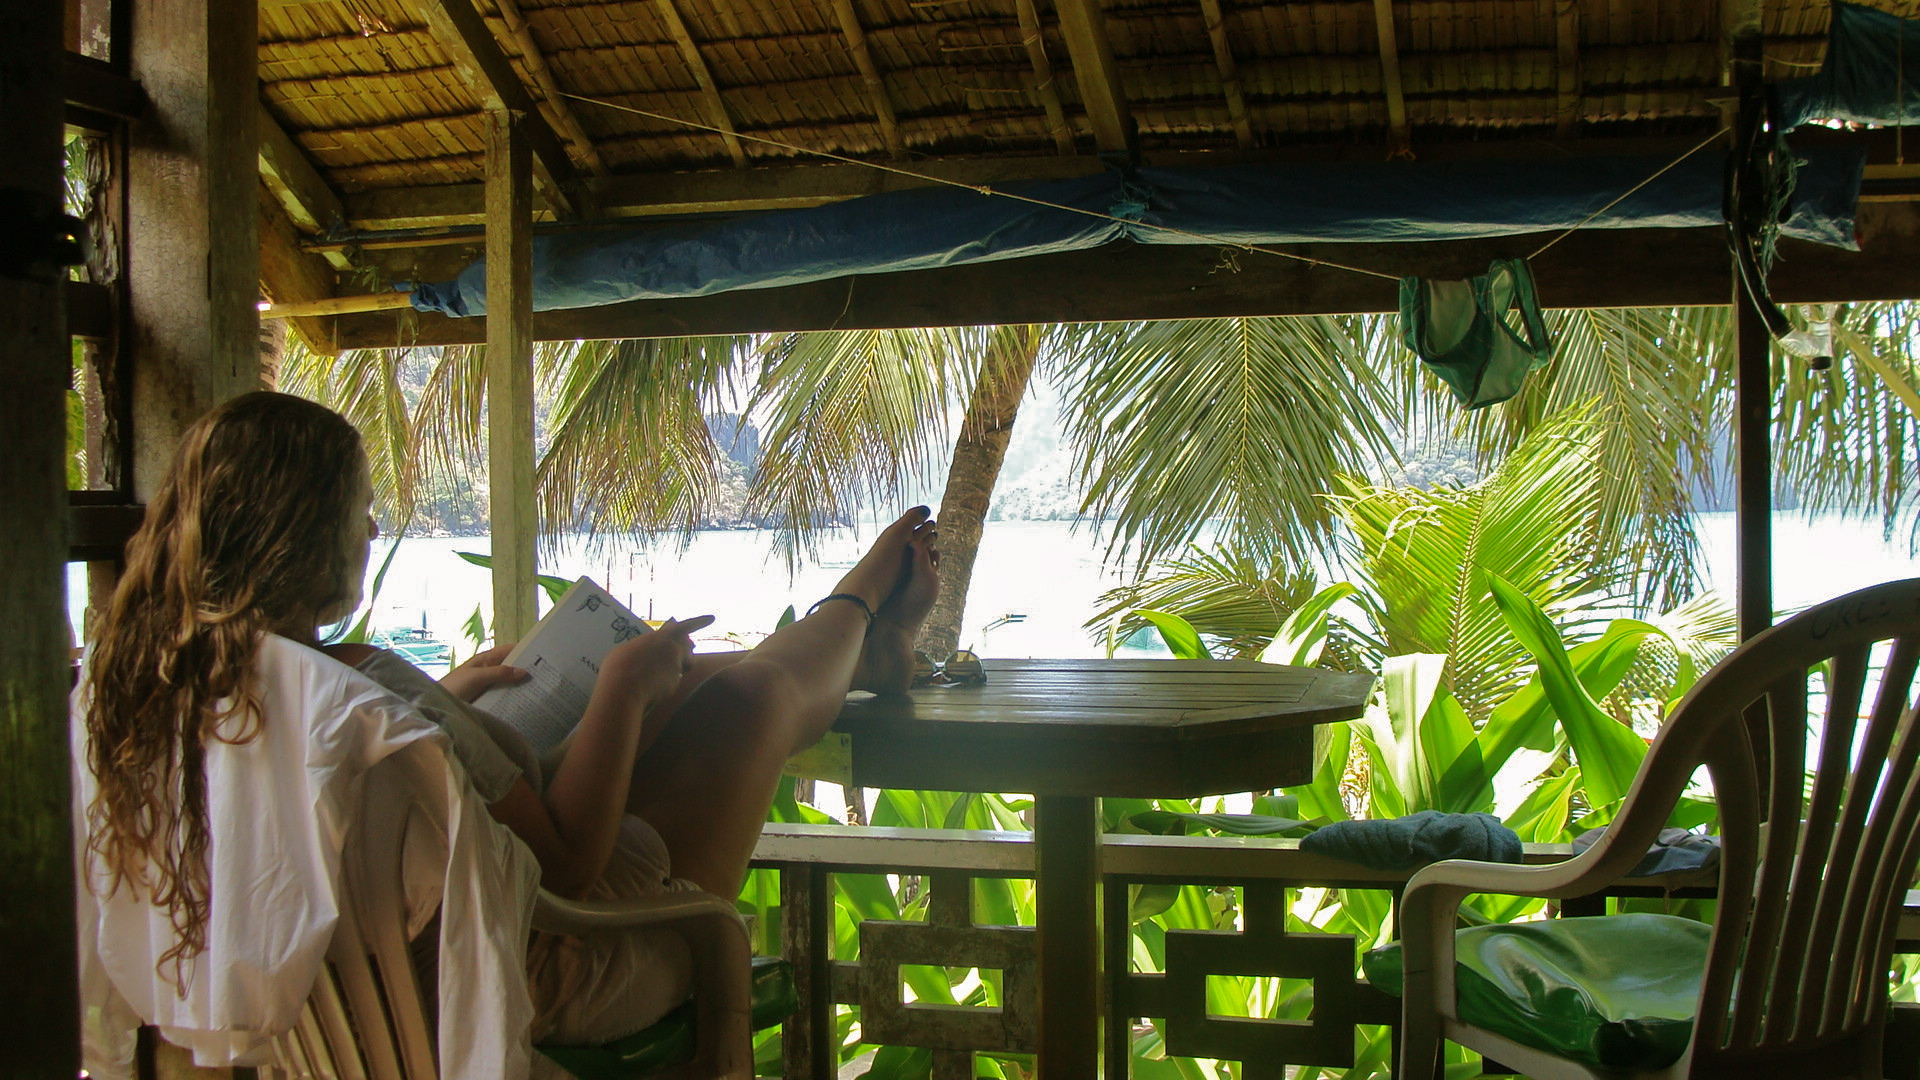 Relaxing in my beach cabana in El Nido, Philippines.